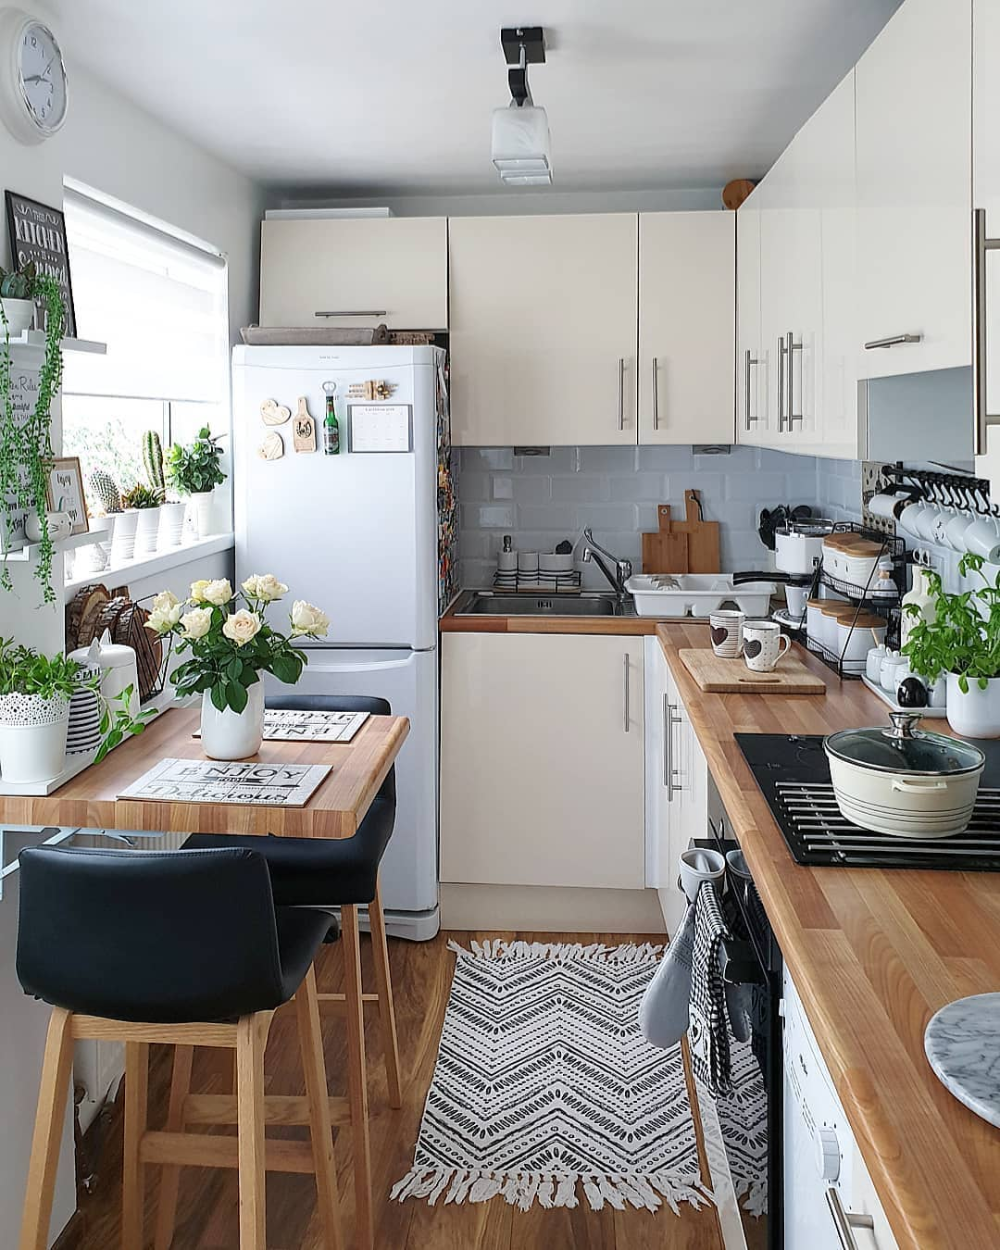 20 Small Kitchen Ideas Ideas To Open Your Compact Room 2019 Page 11 Of 26 My Blog Kitchen Design Small Kitchen Remodel Small Small Kitchen Decor